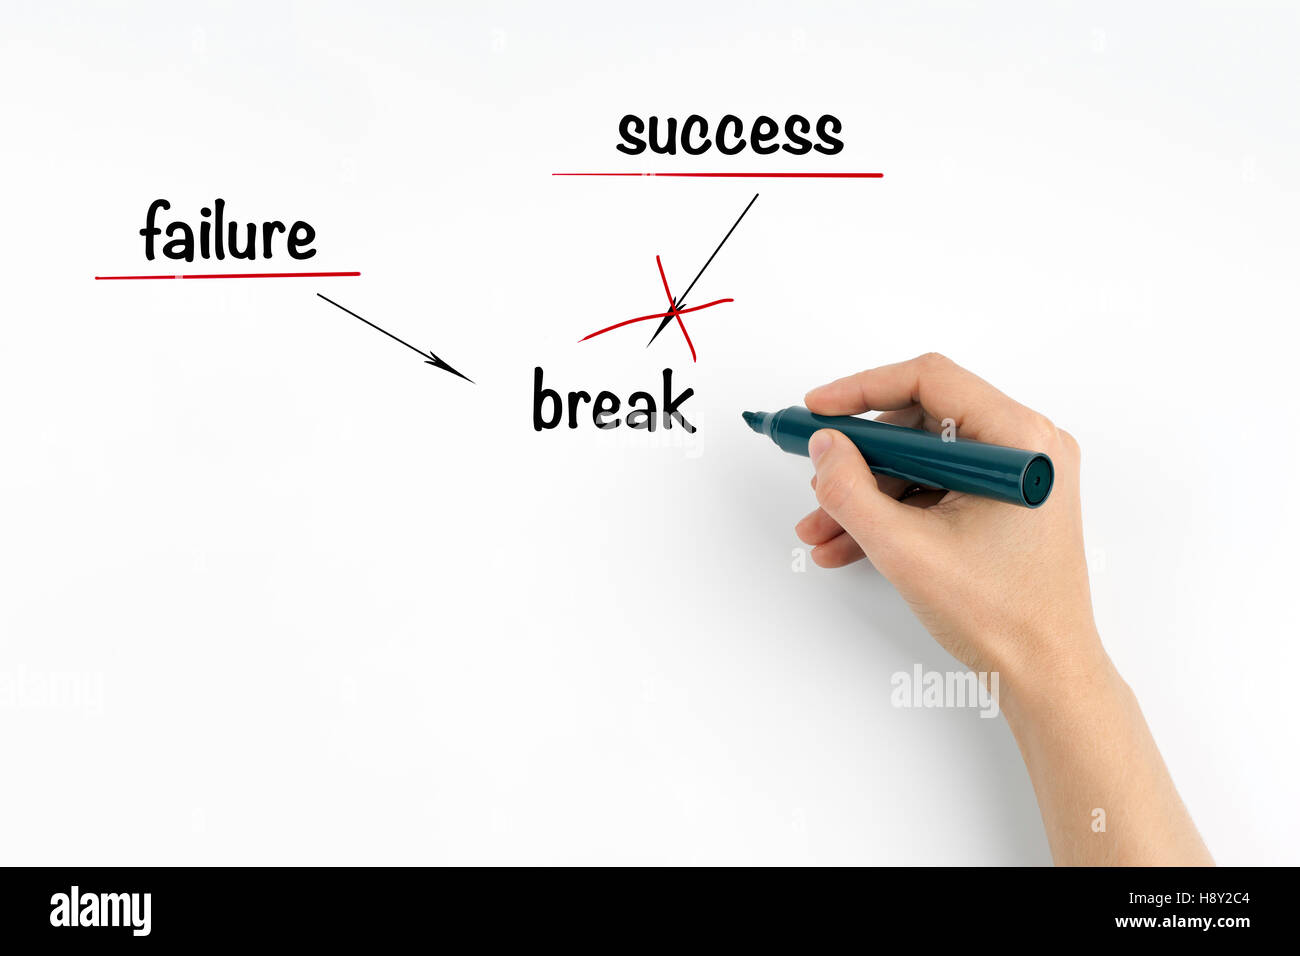 Success, failure, break on a white background - Stock Image